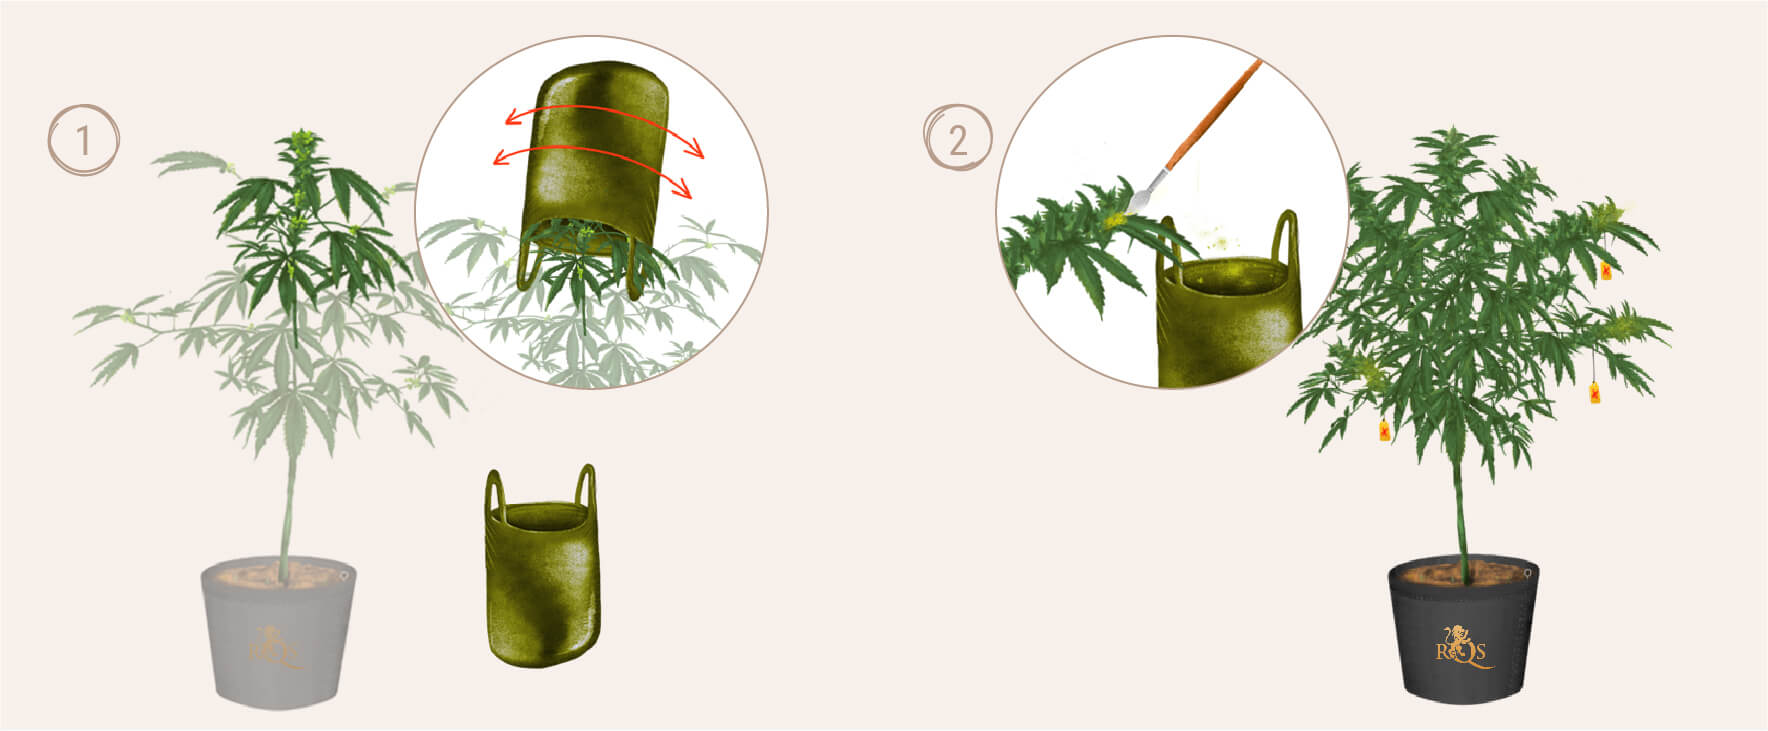 BREEDING: CREATE YOUR OWN STRAINS